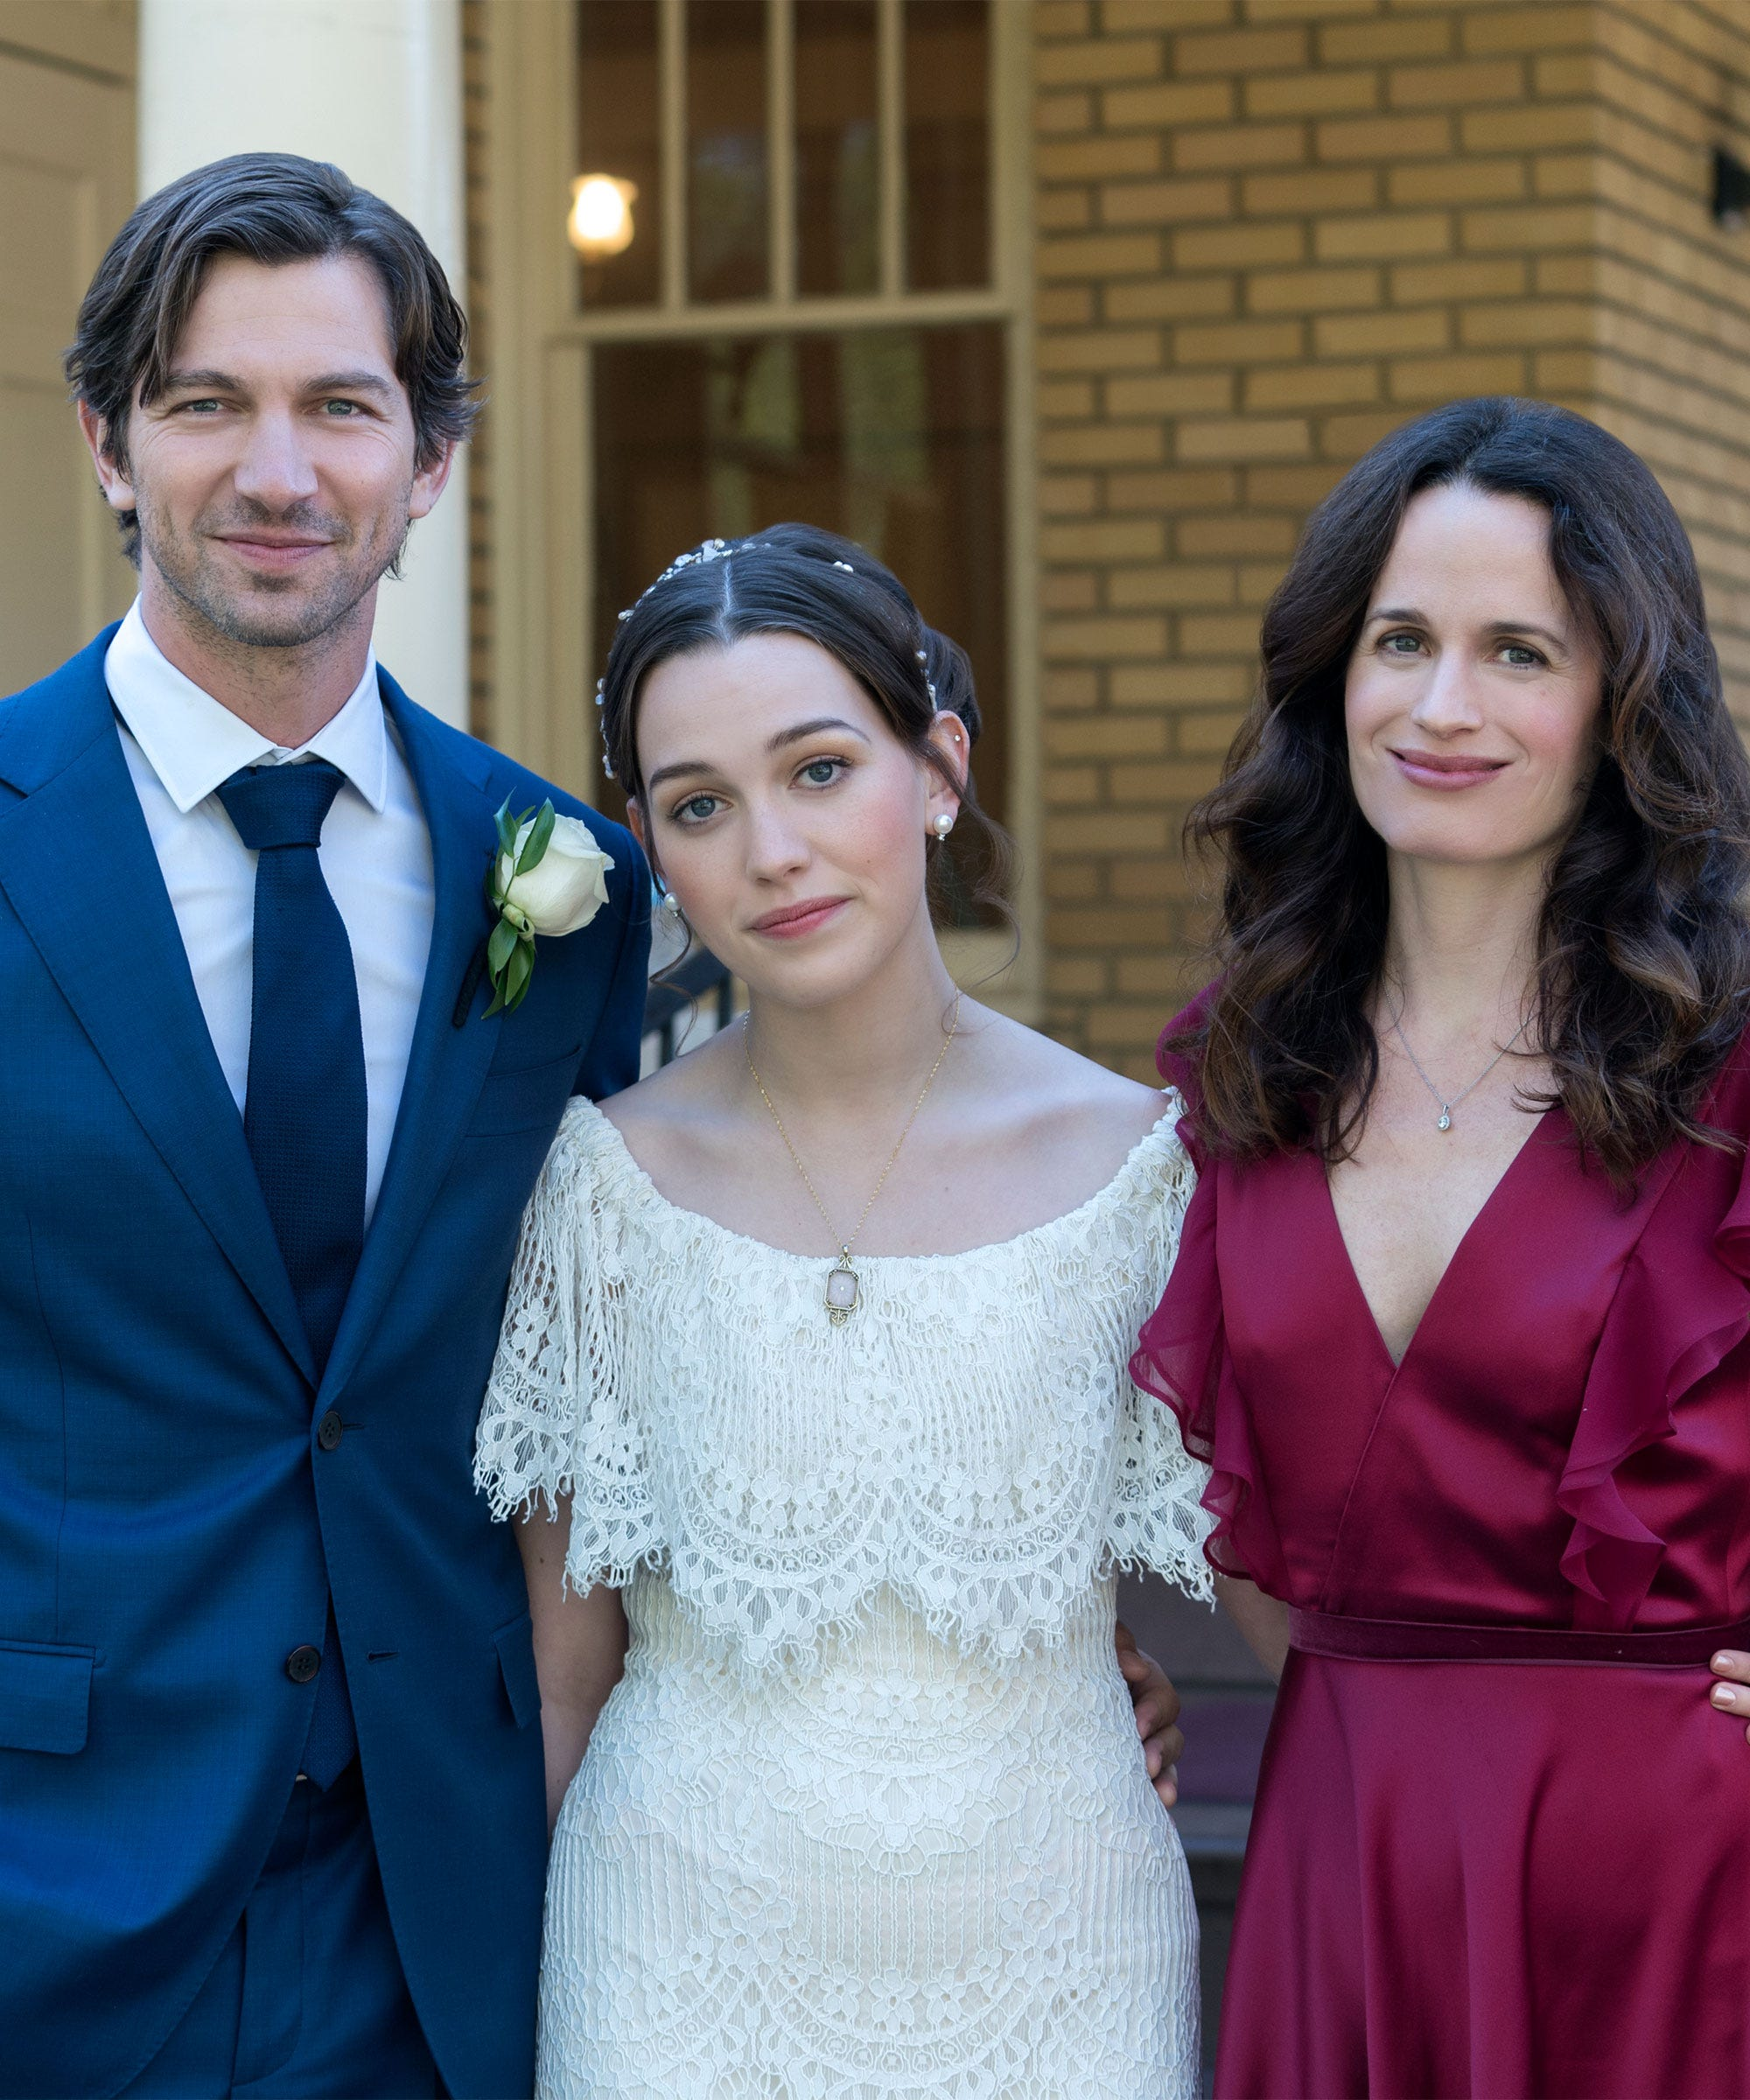 Haunting Of Hill House Season 2 Cast Features Fan Faves